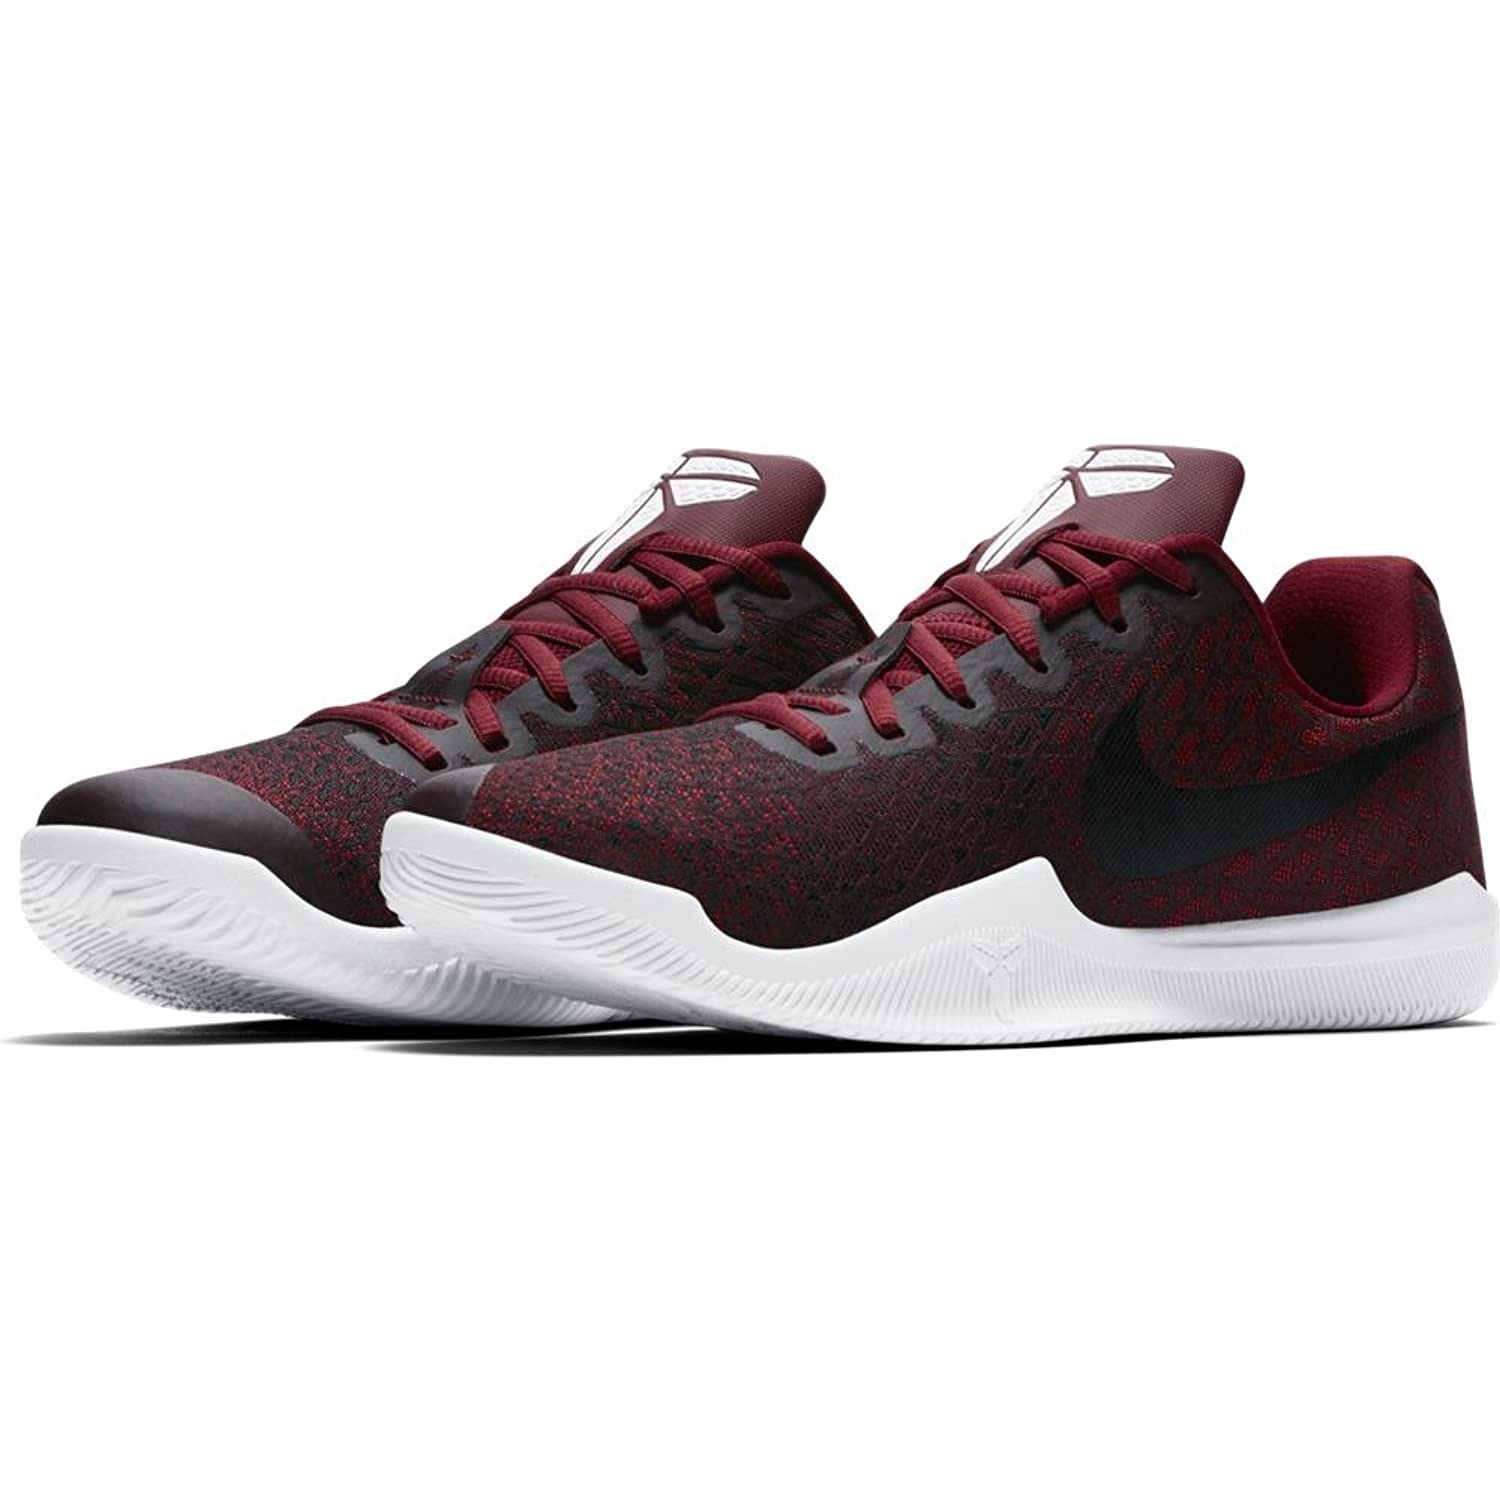 Nike Kobe Mamba Instinct Mens Basketball Shoe (9)